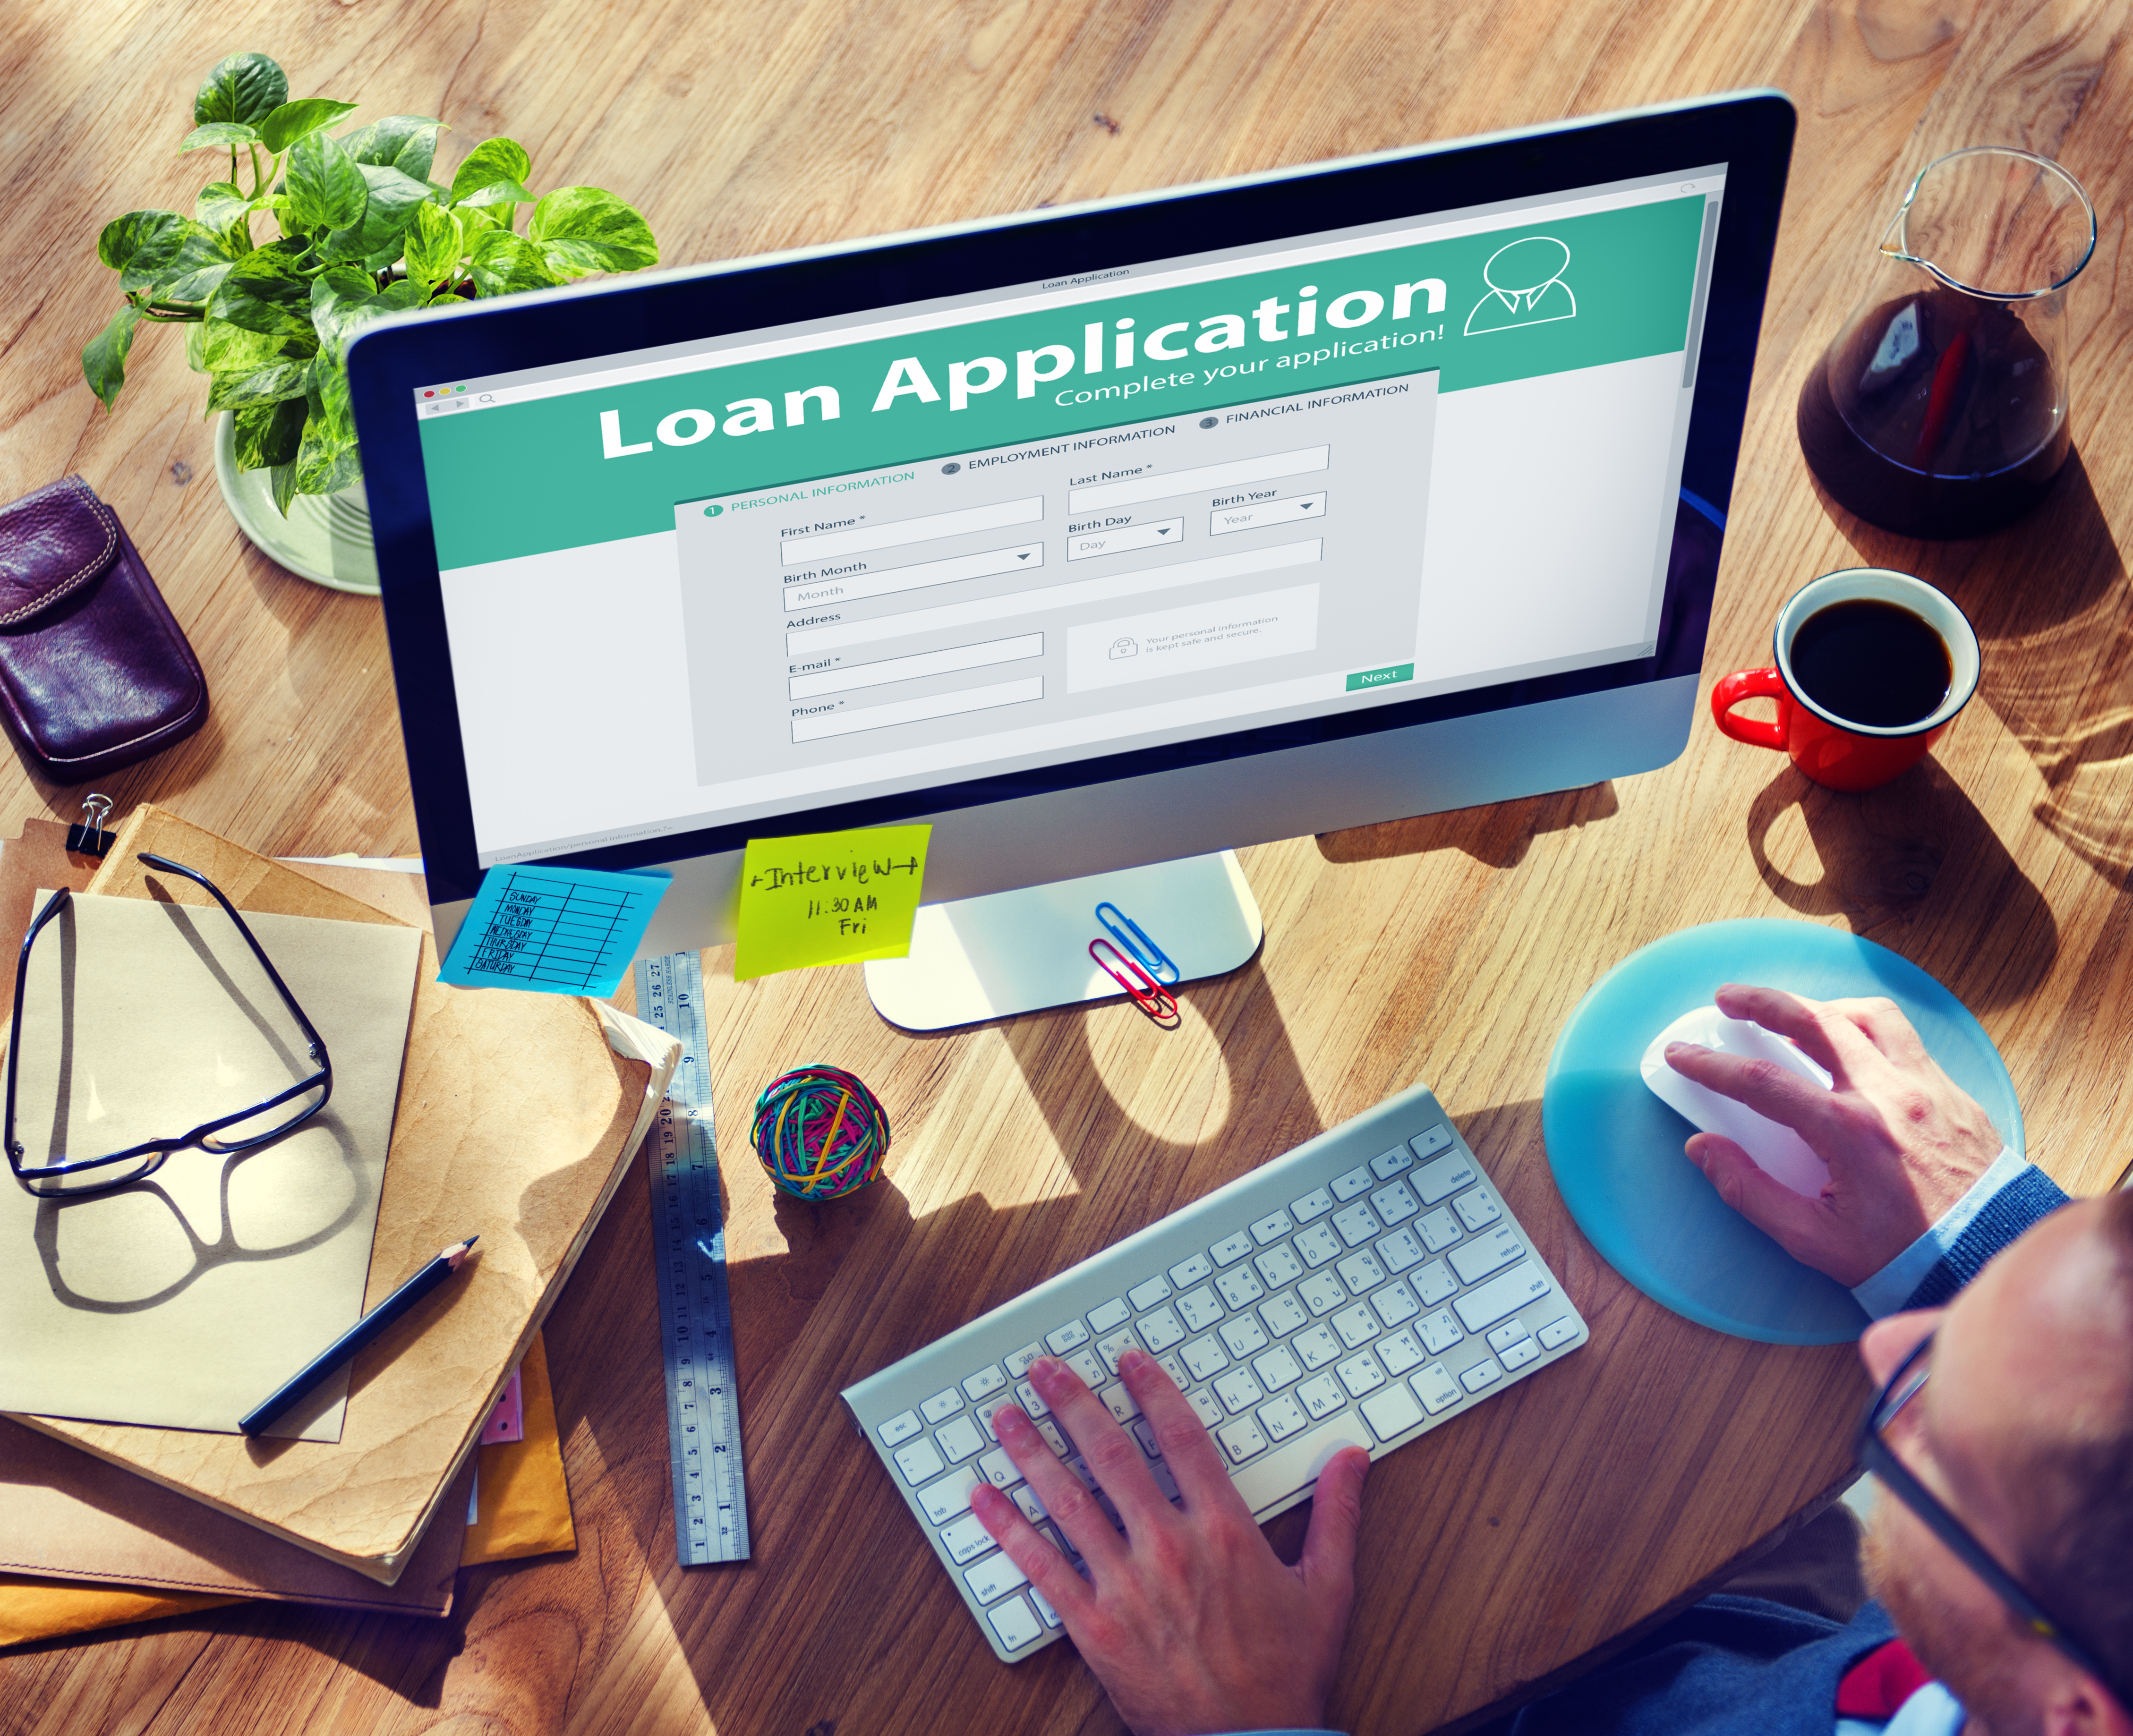 Debt Consolidation Loan to Manage Education and Medical Bills